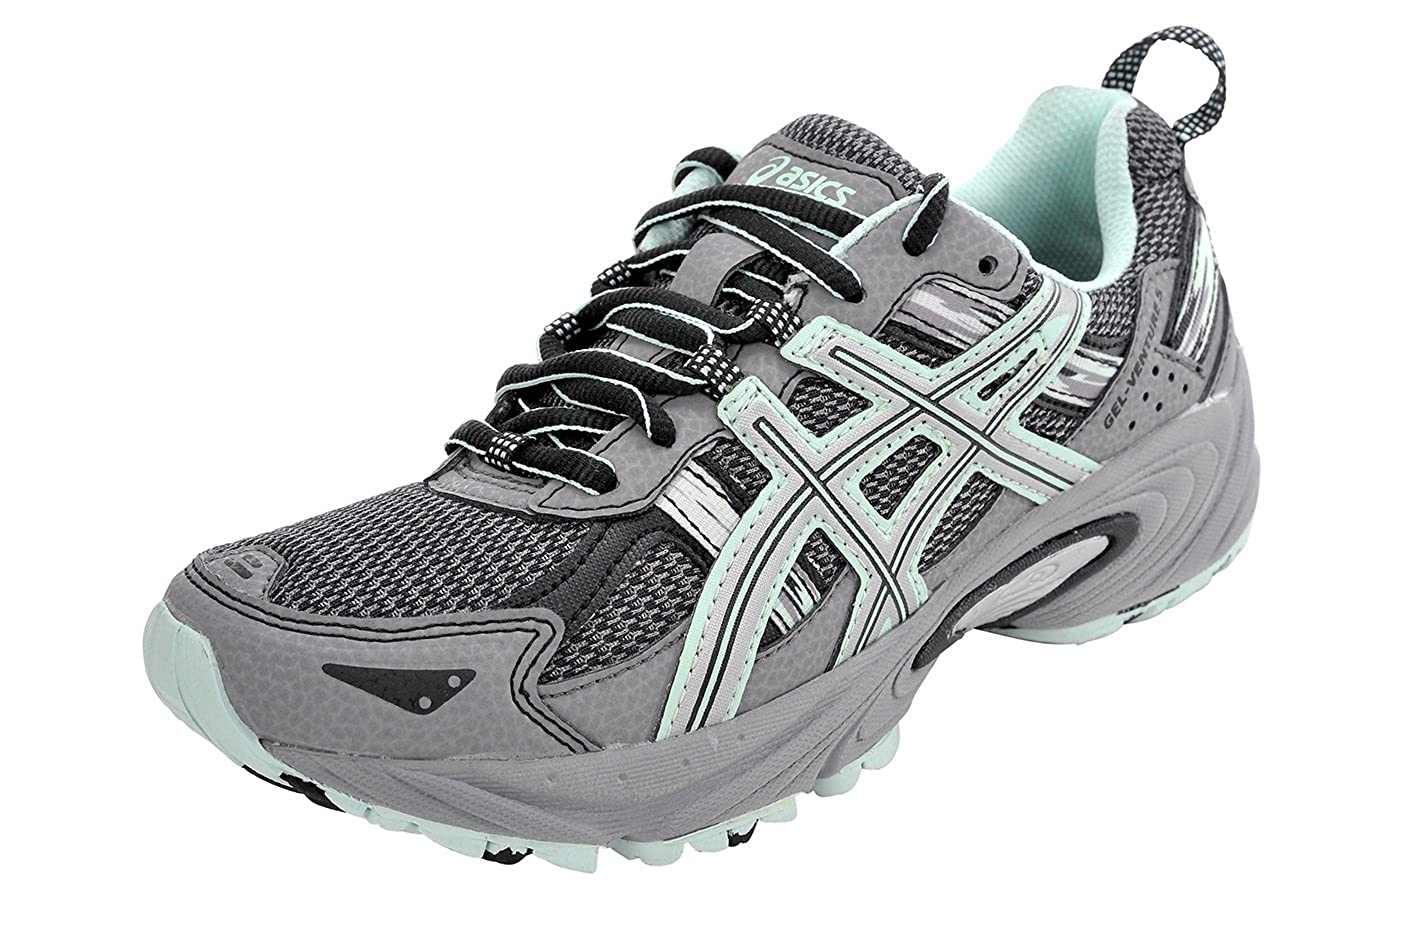 7e2ebd9608e ASICS Women s Gel-Venture 5 Running Shoe (6.5 B(M) US